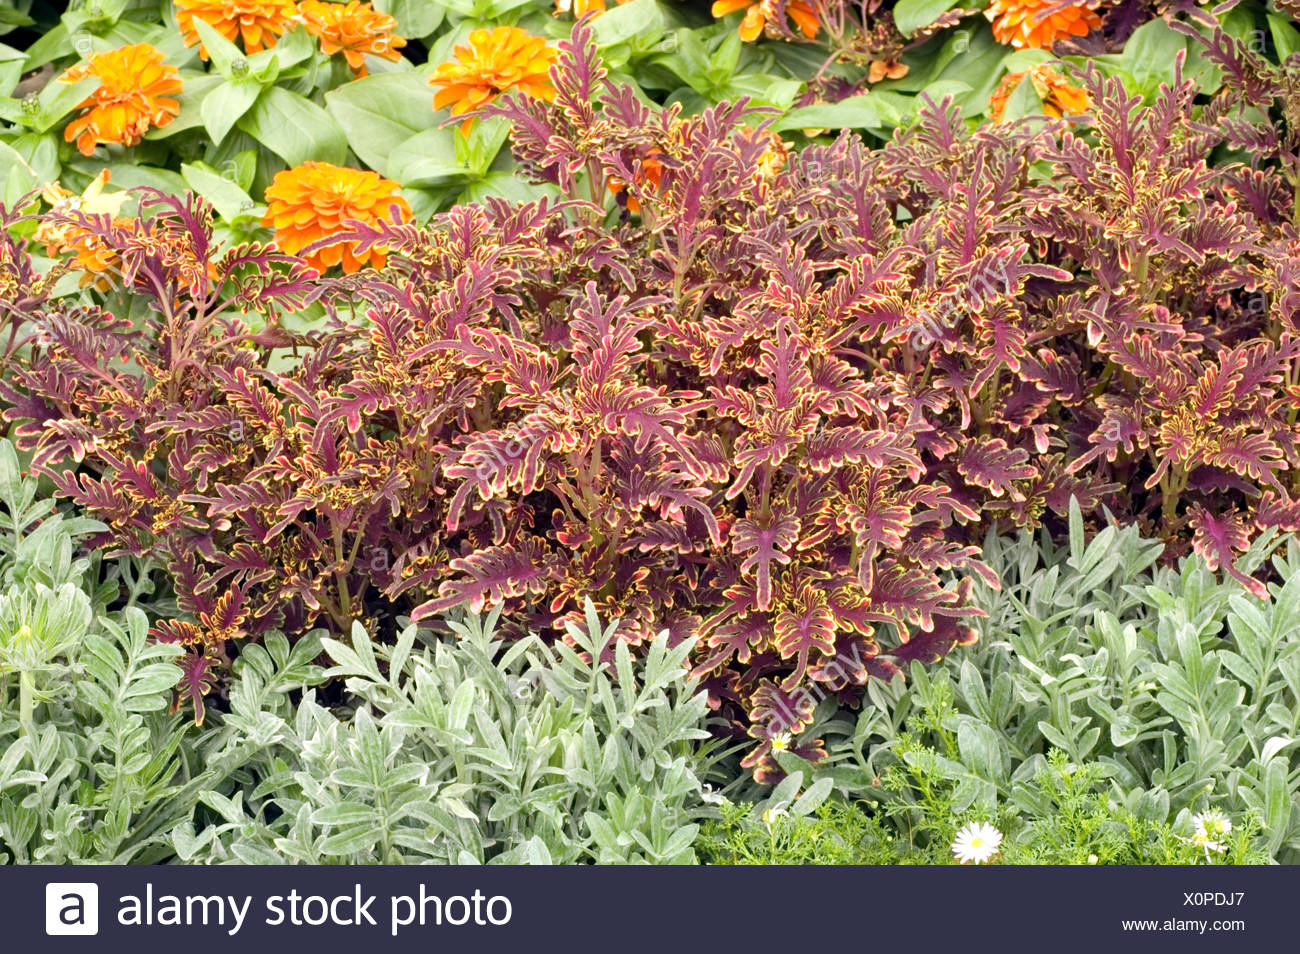 COLEUS KIWI FERN Stock Photo: 275859535 - Alamy